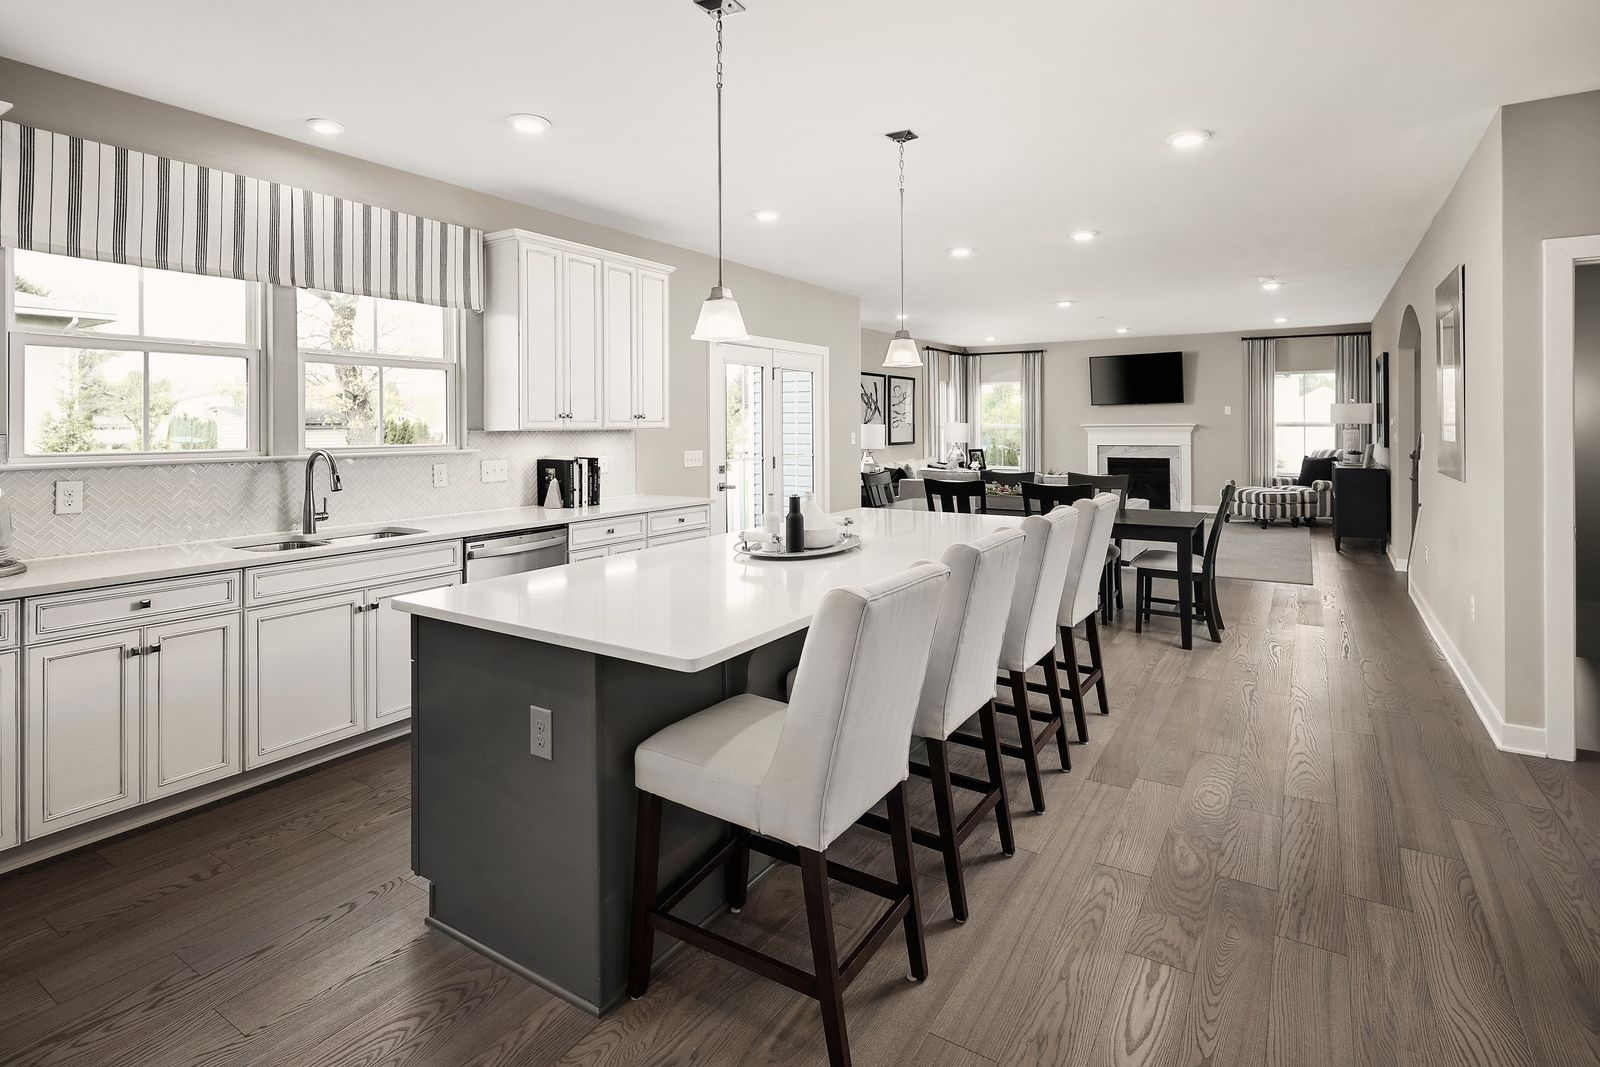 Kitchen featured in the Corsica By Ryan Homes in Philadelphia, PA